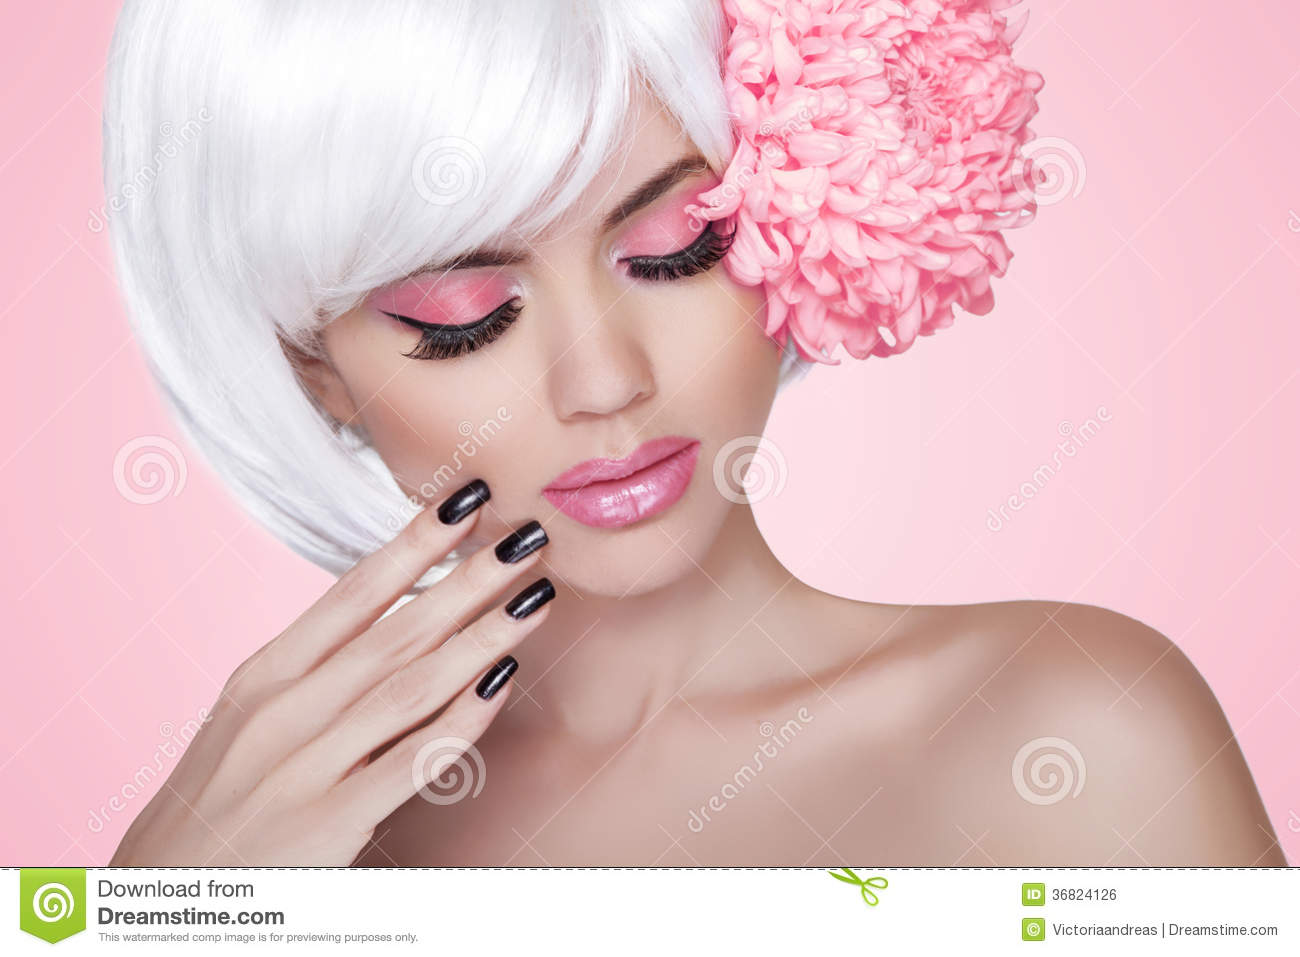 Makeup. Manicured Nails. Fashion Beauty Model Girl